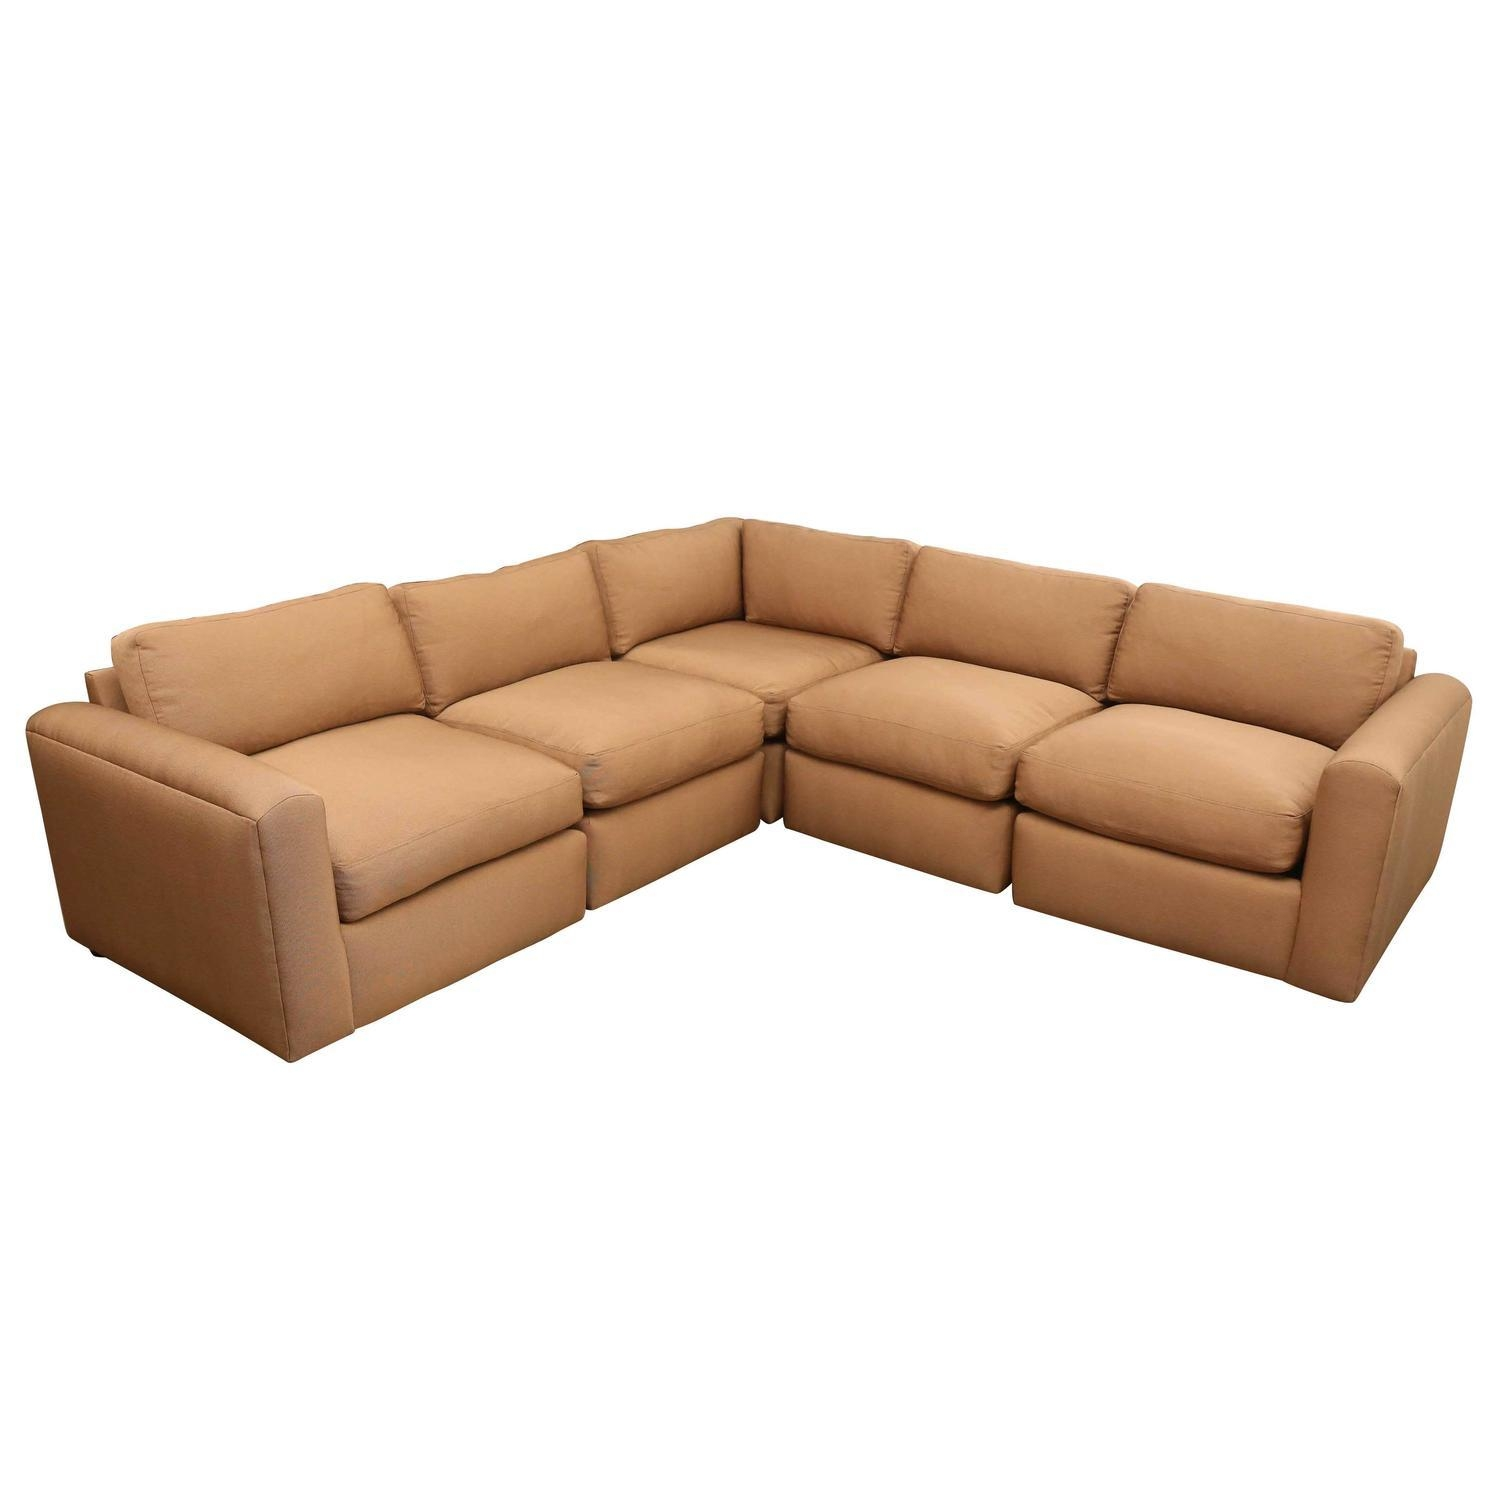 Antique And Vintage Sectional Sofas – 416 For Sale At 1Stdibs With Mid Century Modern Sectional (View 16 of 20)